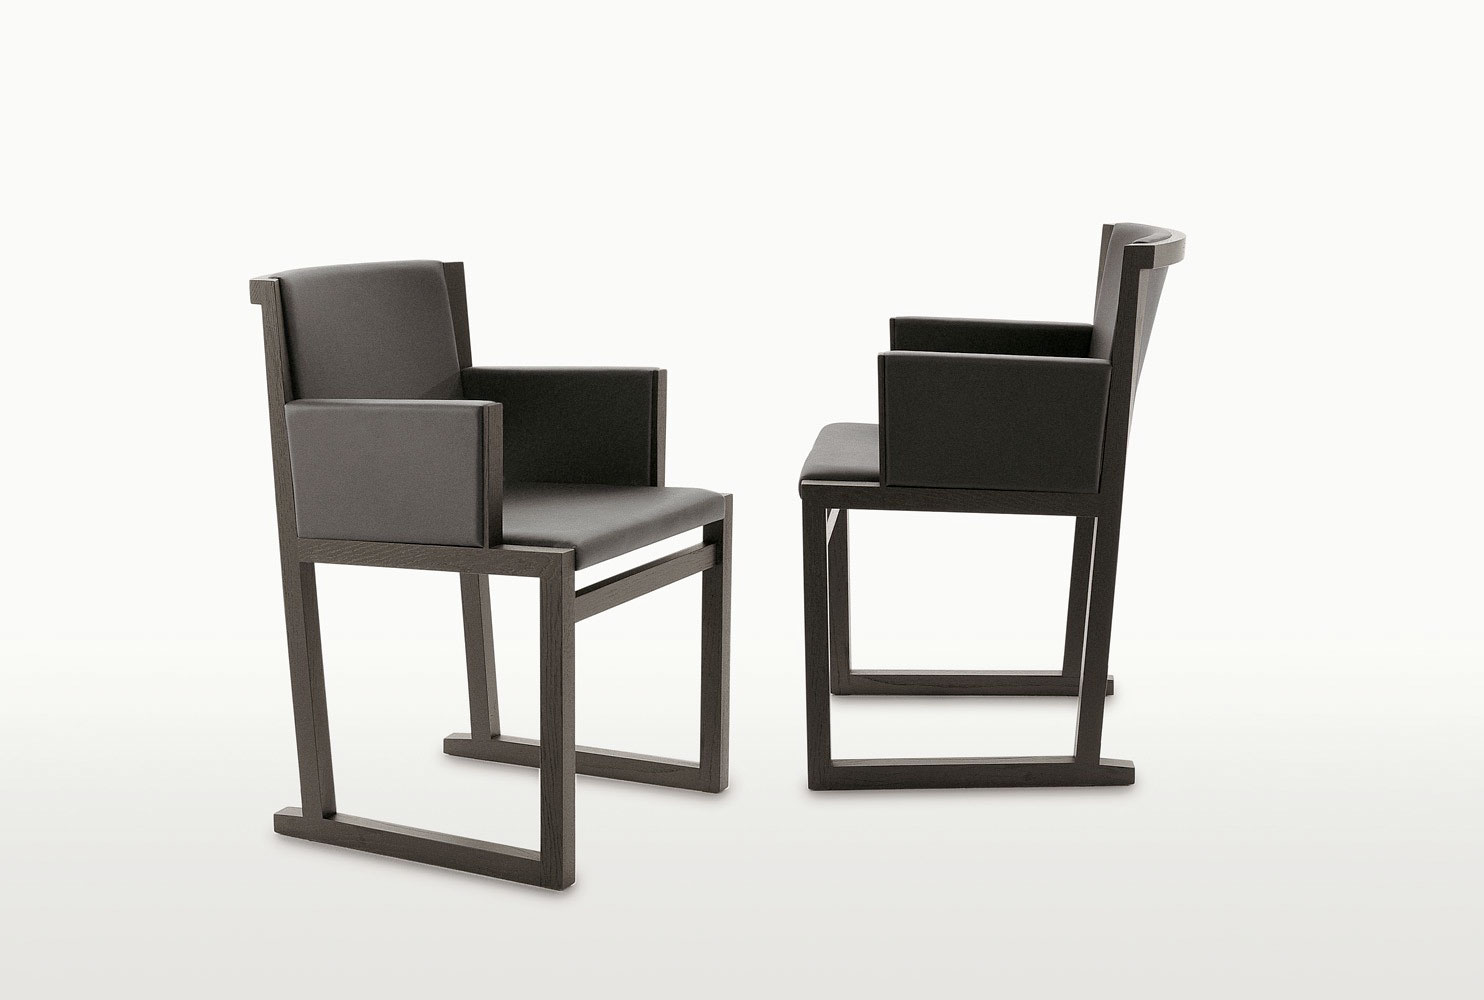 maxalto b b italia musa chair buy from campbell watson uk. Black Bedroom Furniture Sets. Home Design Ideas